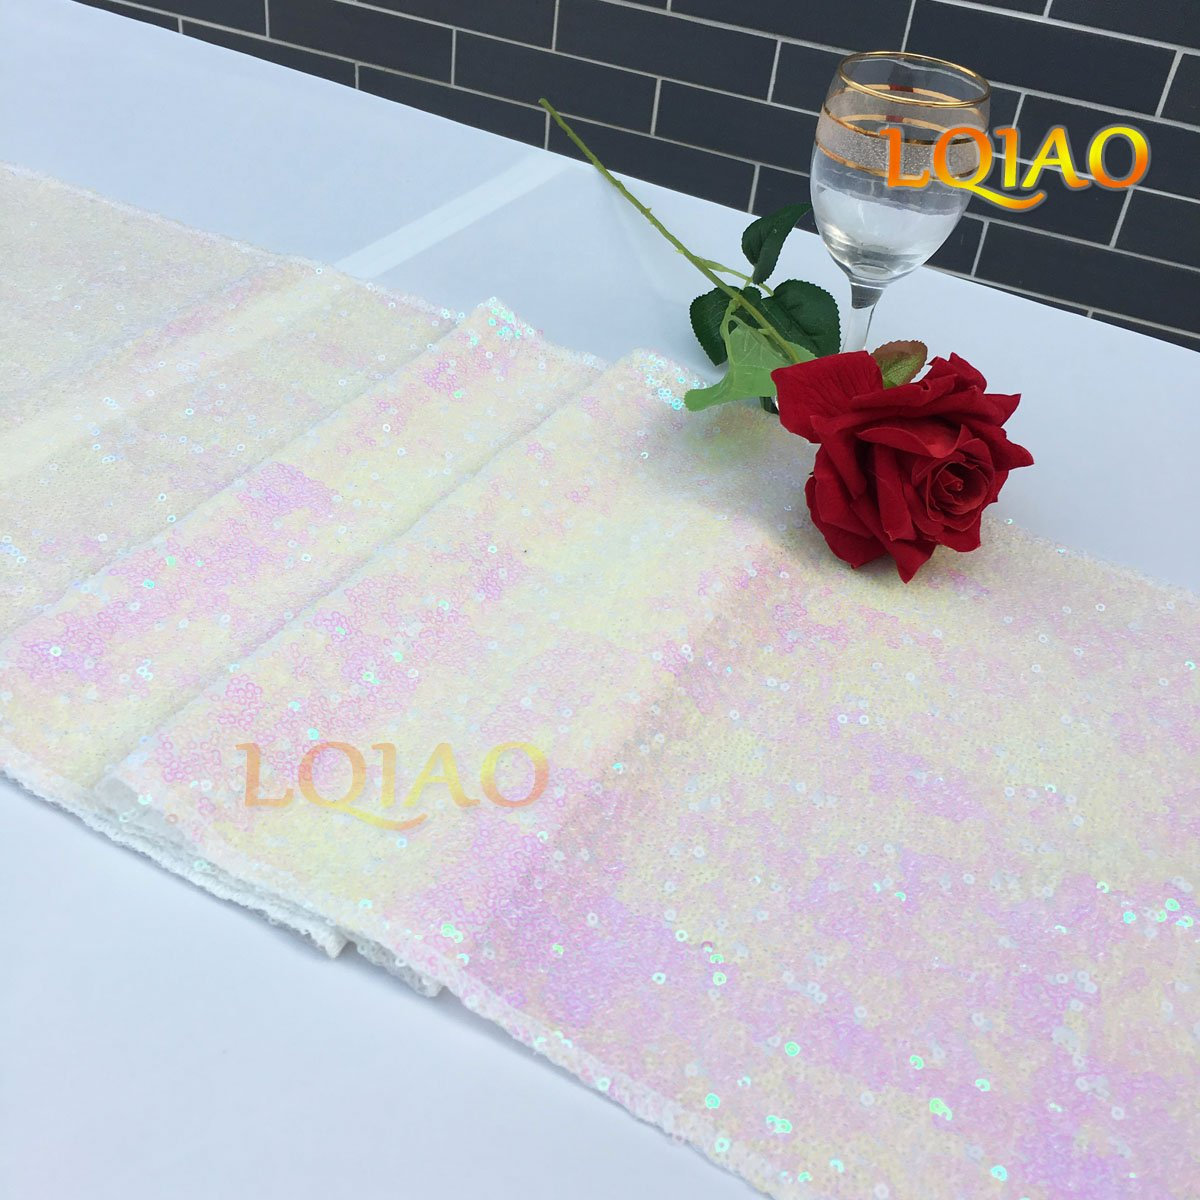 LQIAO Christmas Table Runner Sequin 12x108-in, Changed White, Shiny Fabric Birthday/Wedding/Party Decoration(wholesale Possible), Pack of 20 PCS by LQIAO